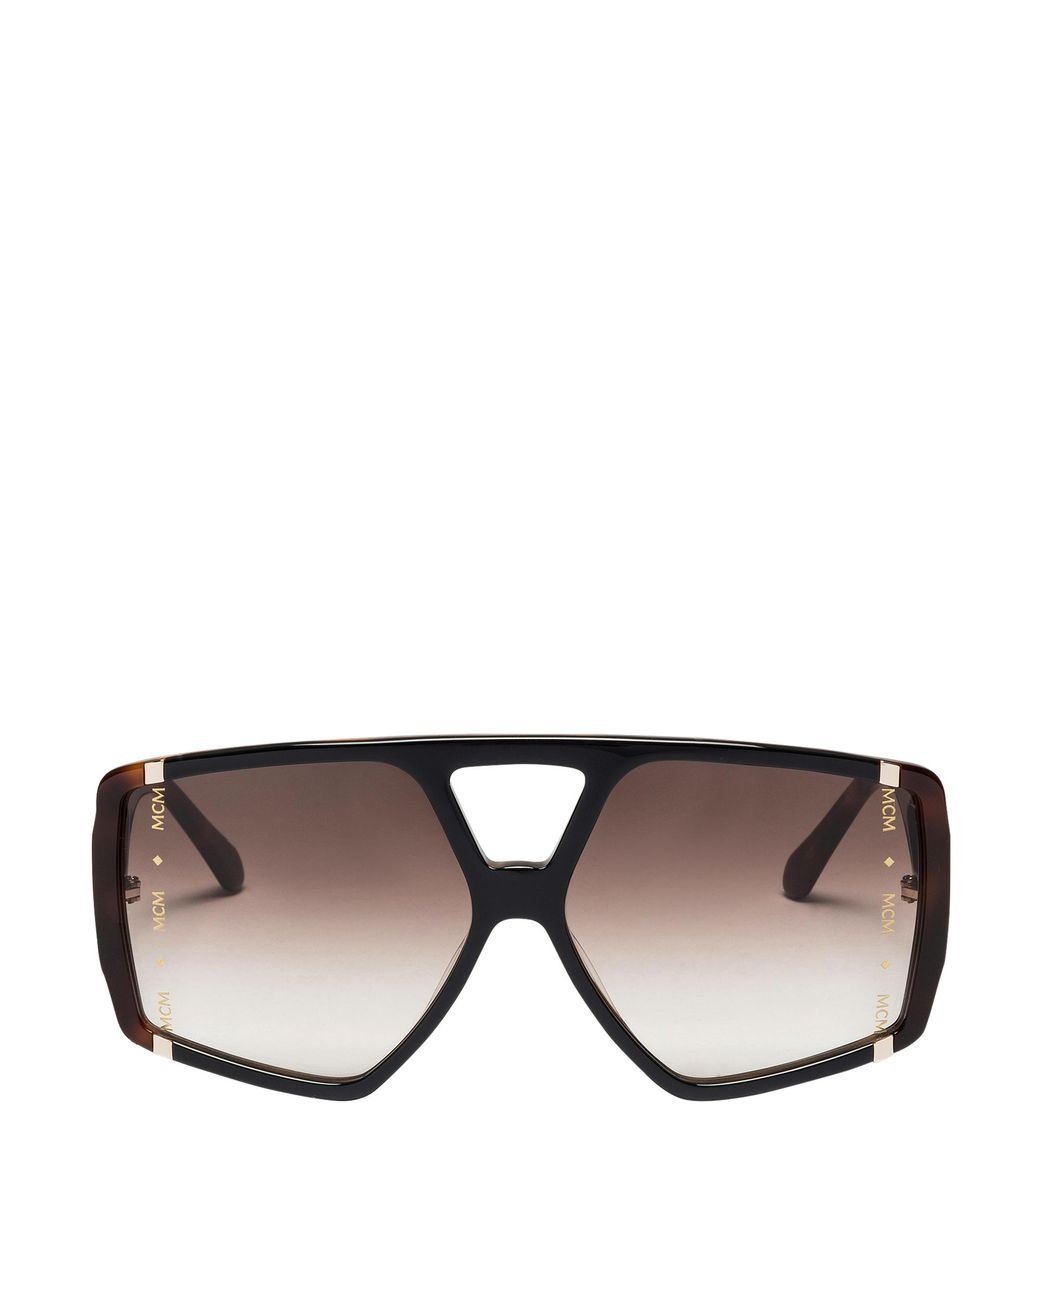 b338170b8cb Long-Touch to Zoom. Long-Touch to Zoom. 1  2  3  4  5. MCM - Brown Square  Logo Plaque Sunglasses ...